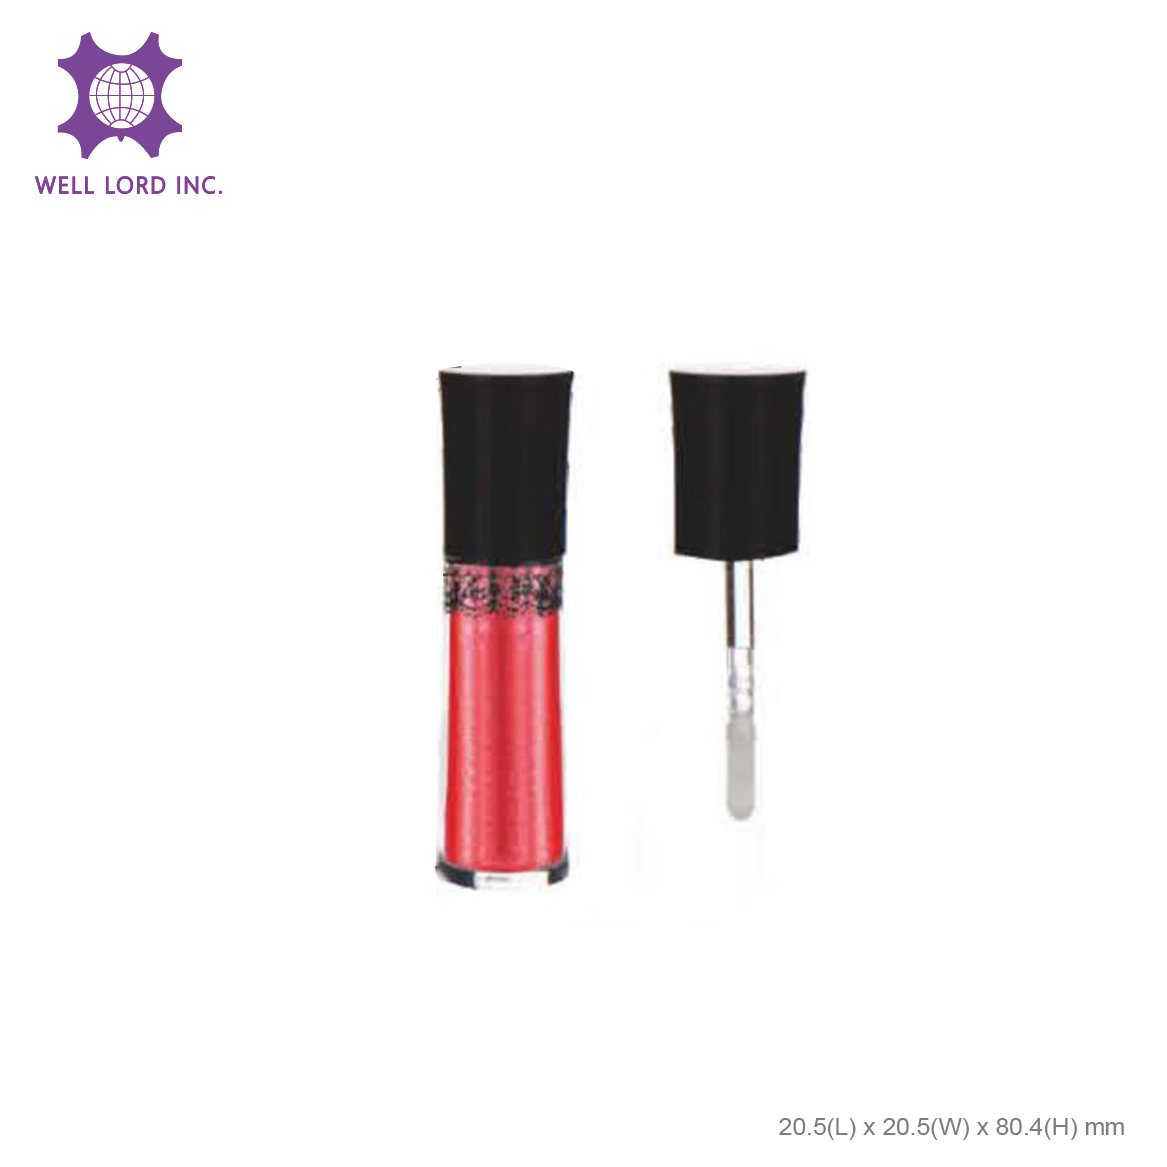 Duo usage screw cap shimmer classic lipstick cylinder twist pink lipstick case